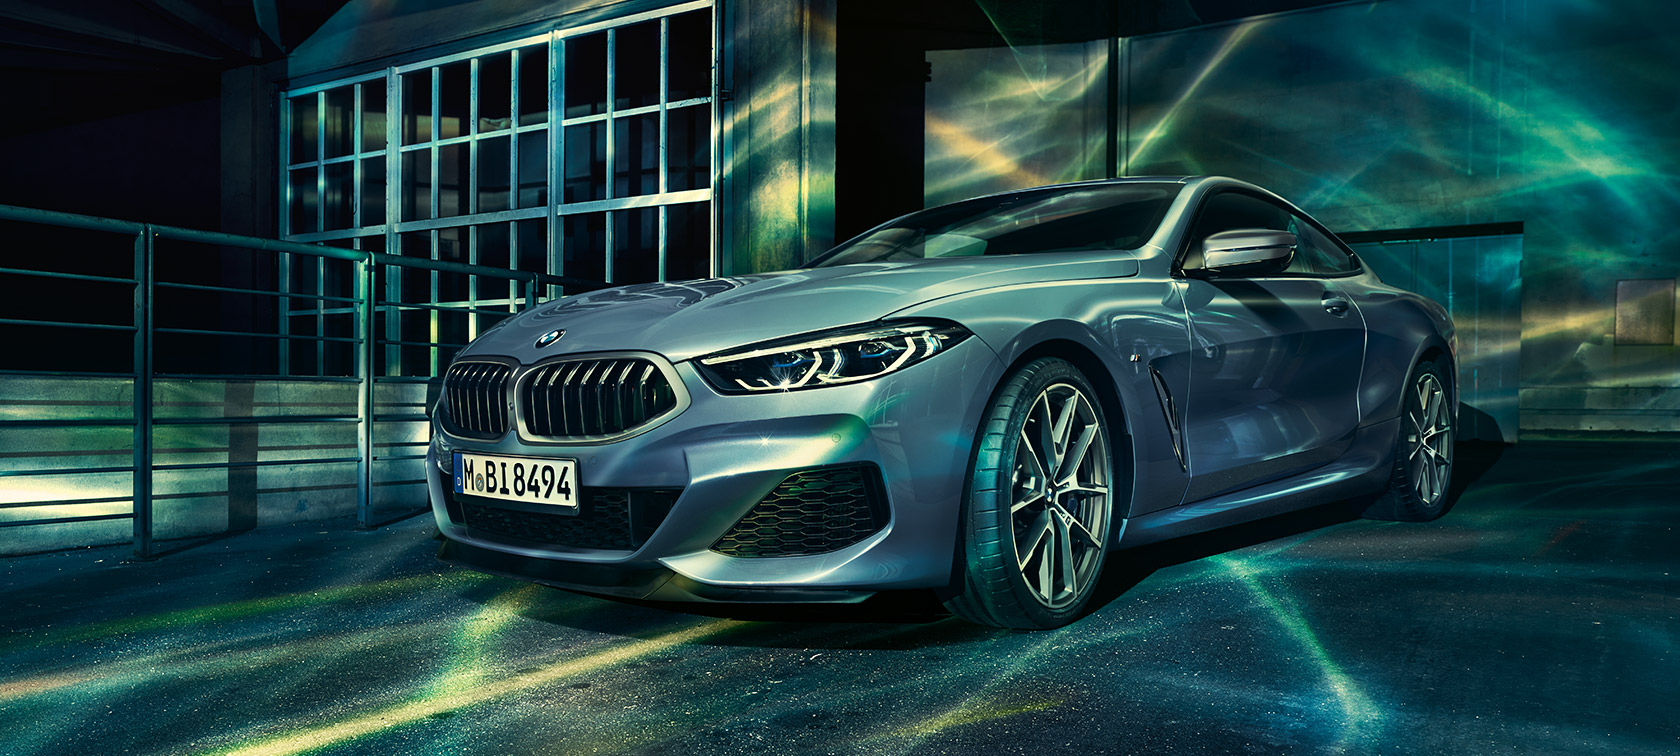 The 8 The Luxury Sports Car Of Bmw Bmw South Africa